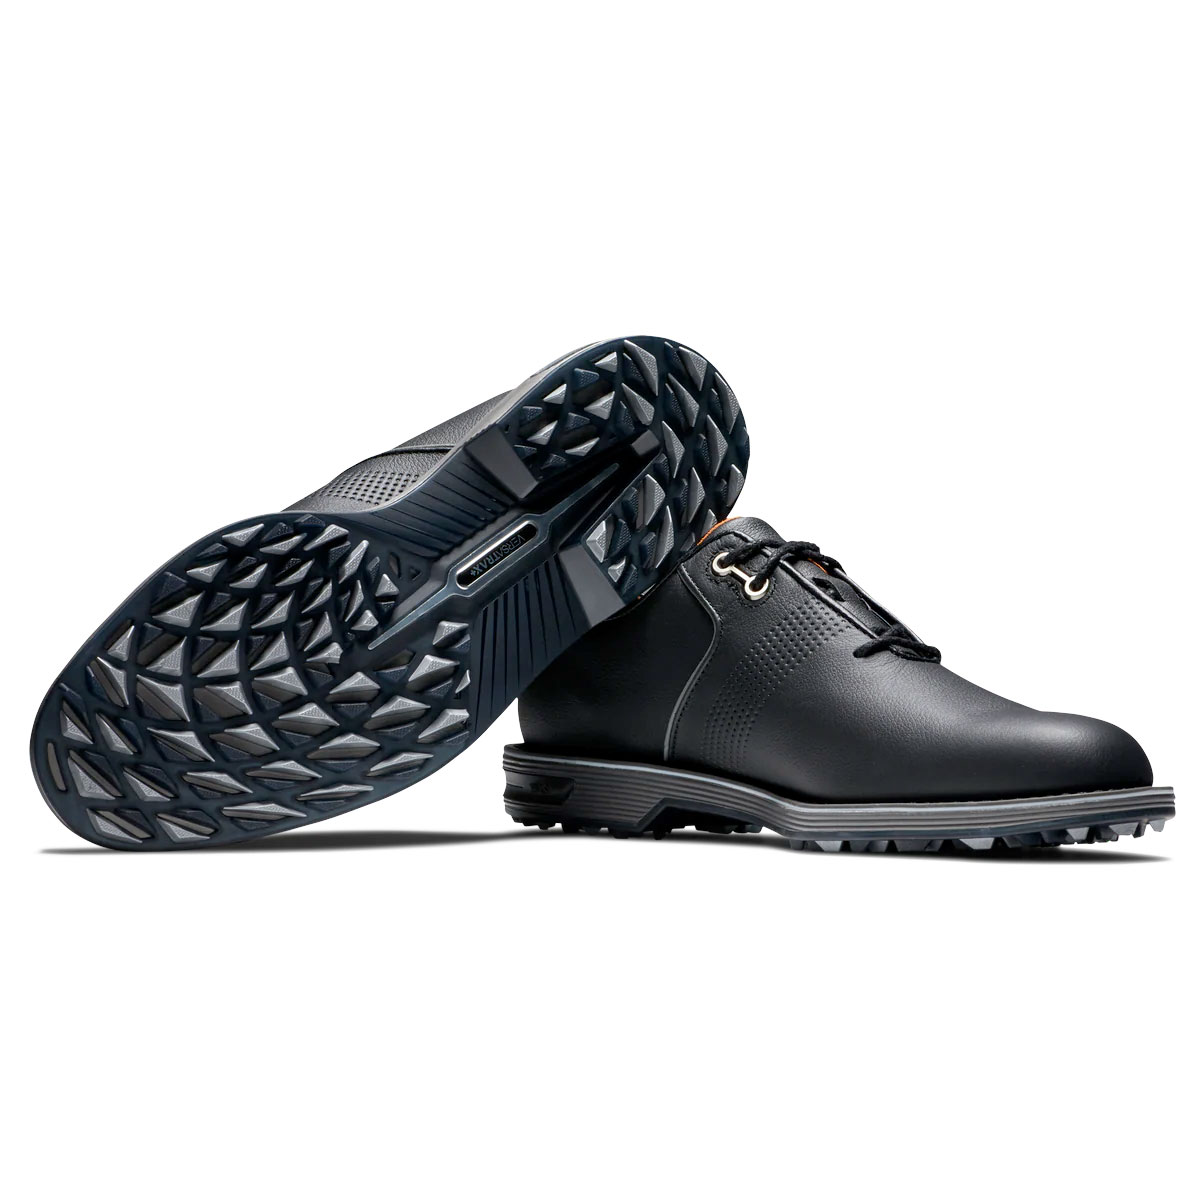 FootJoy Dryjoys Premiere Series Flint Mens Spikeless Golf Shoes  - Black